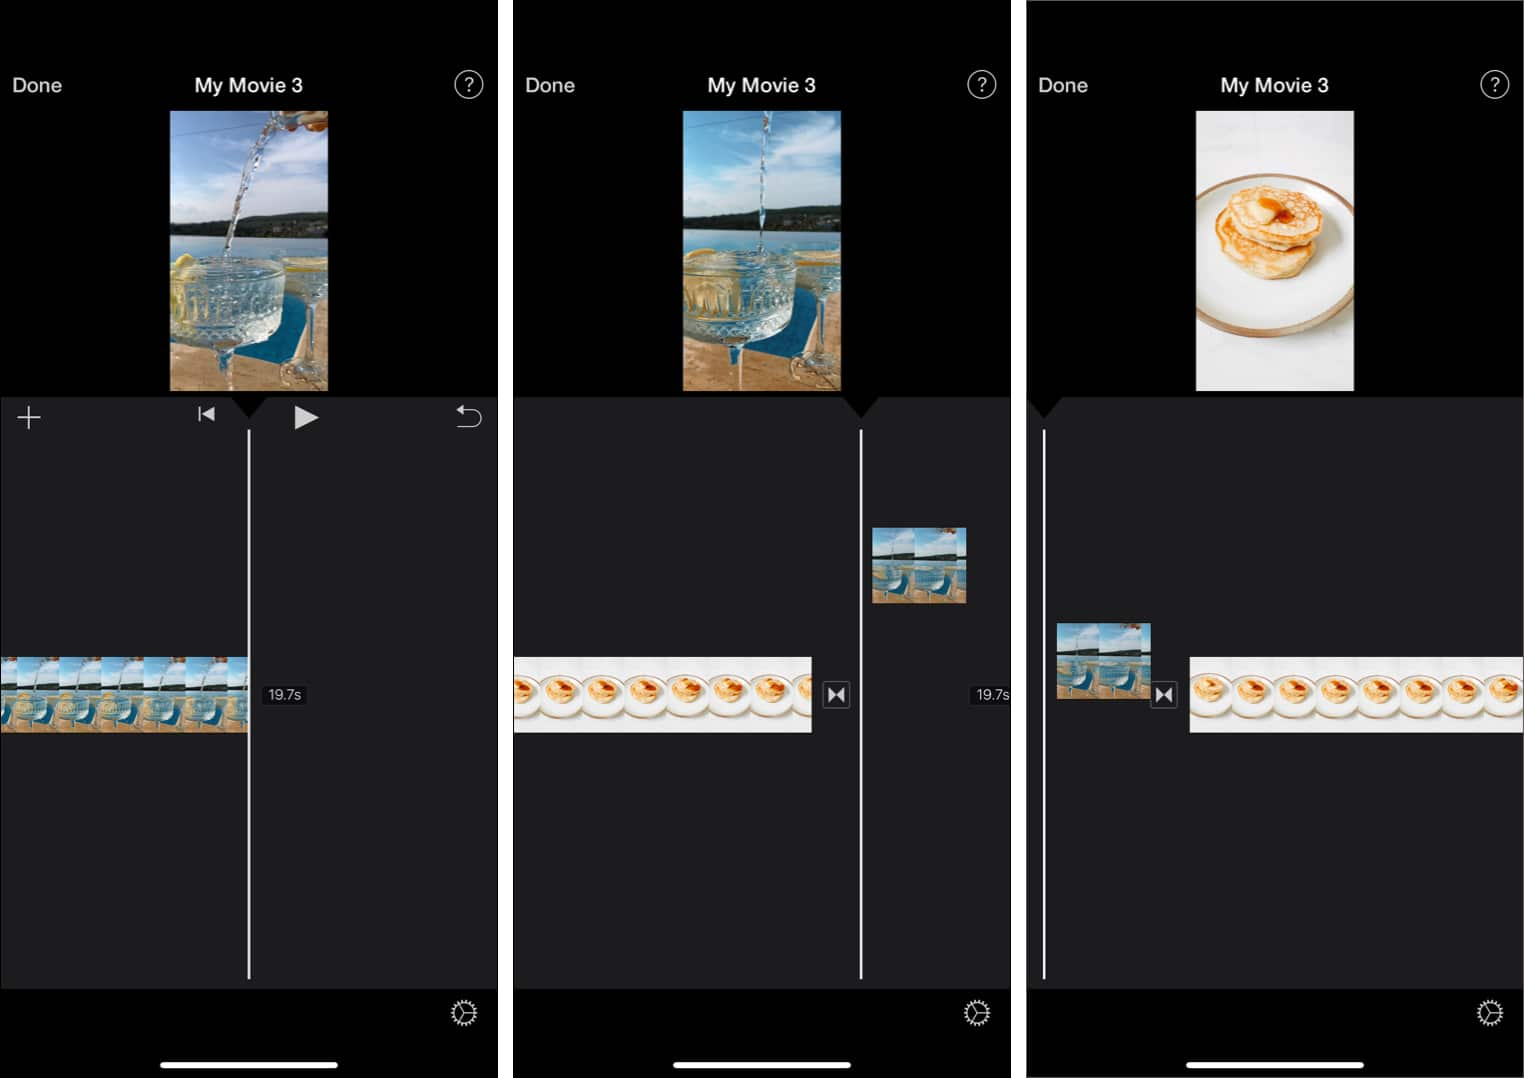 Dragging to change video position in iMovie timeline